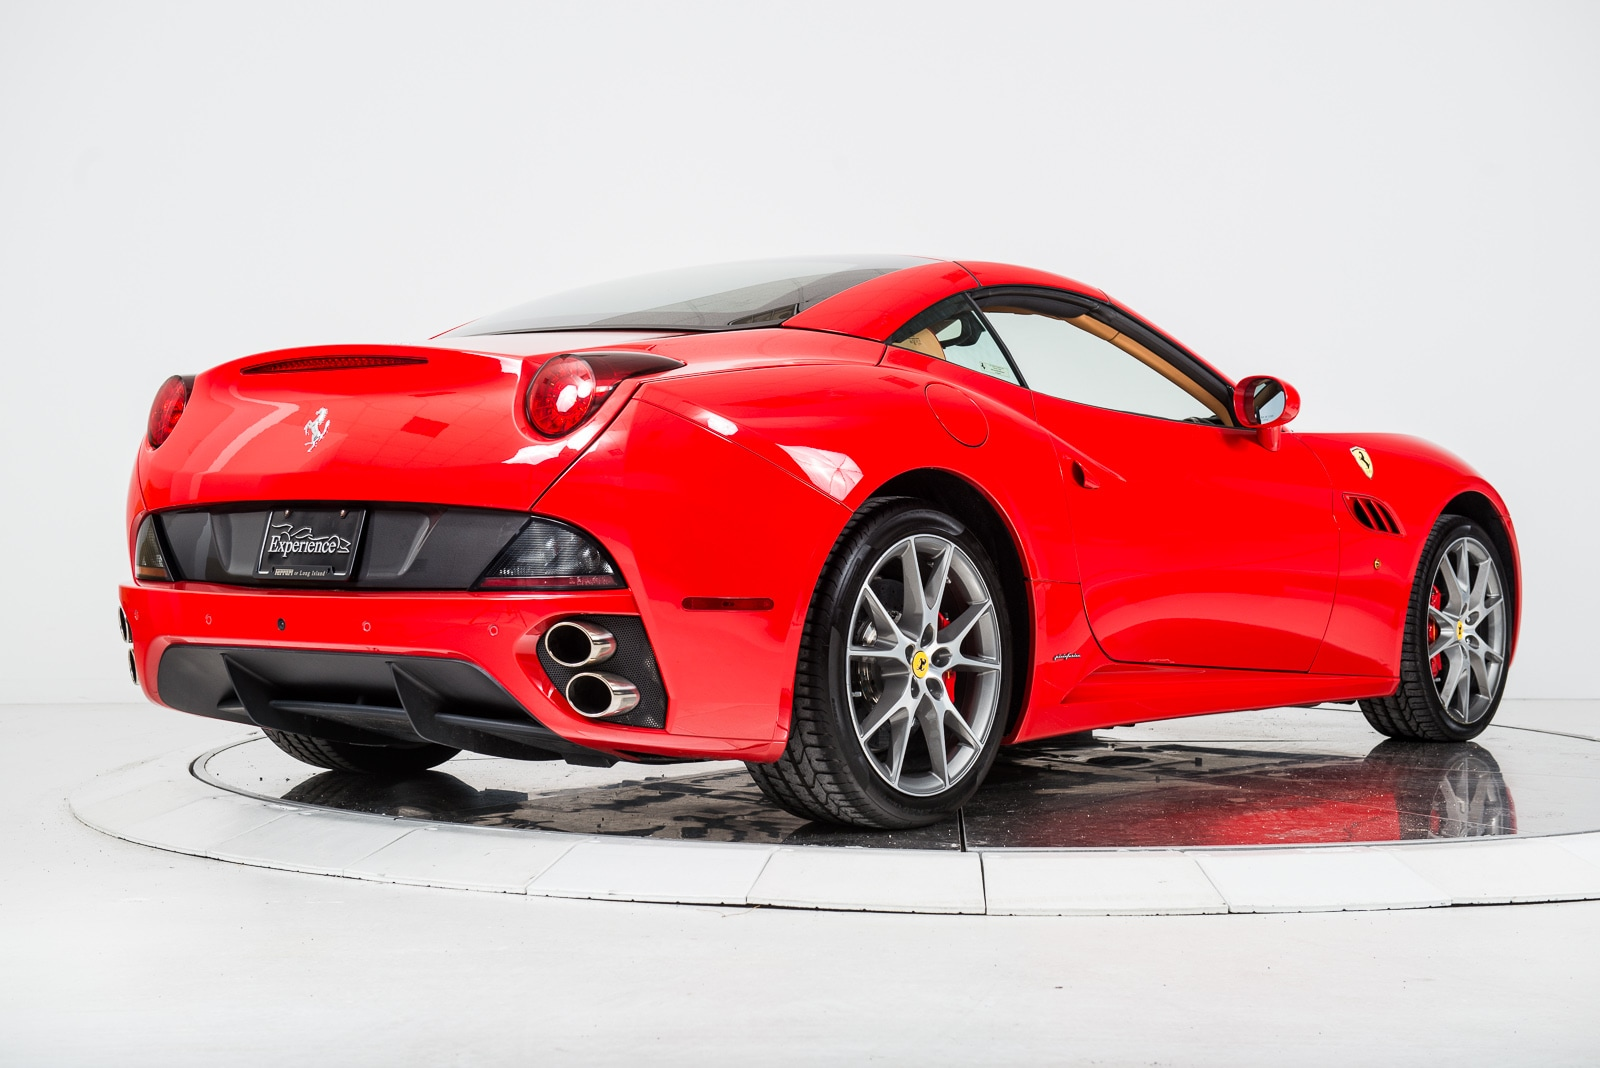 Used 2014 FERRARI CALIFORNIA in Red For Sale in NYC | VIN ...